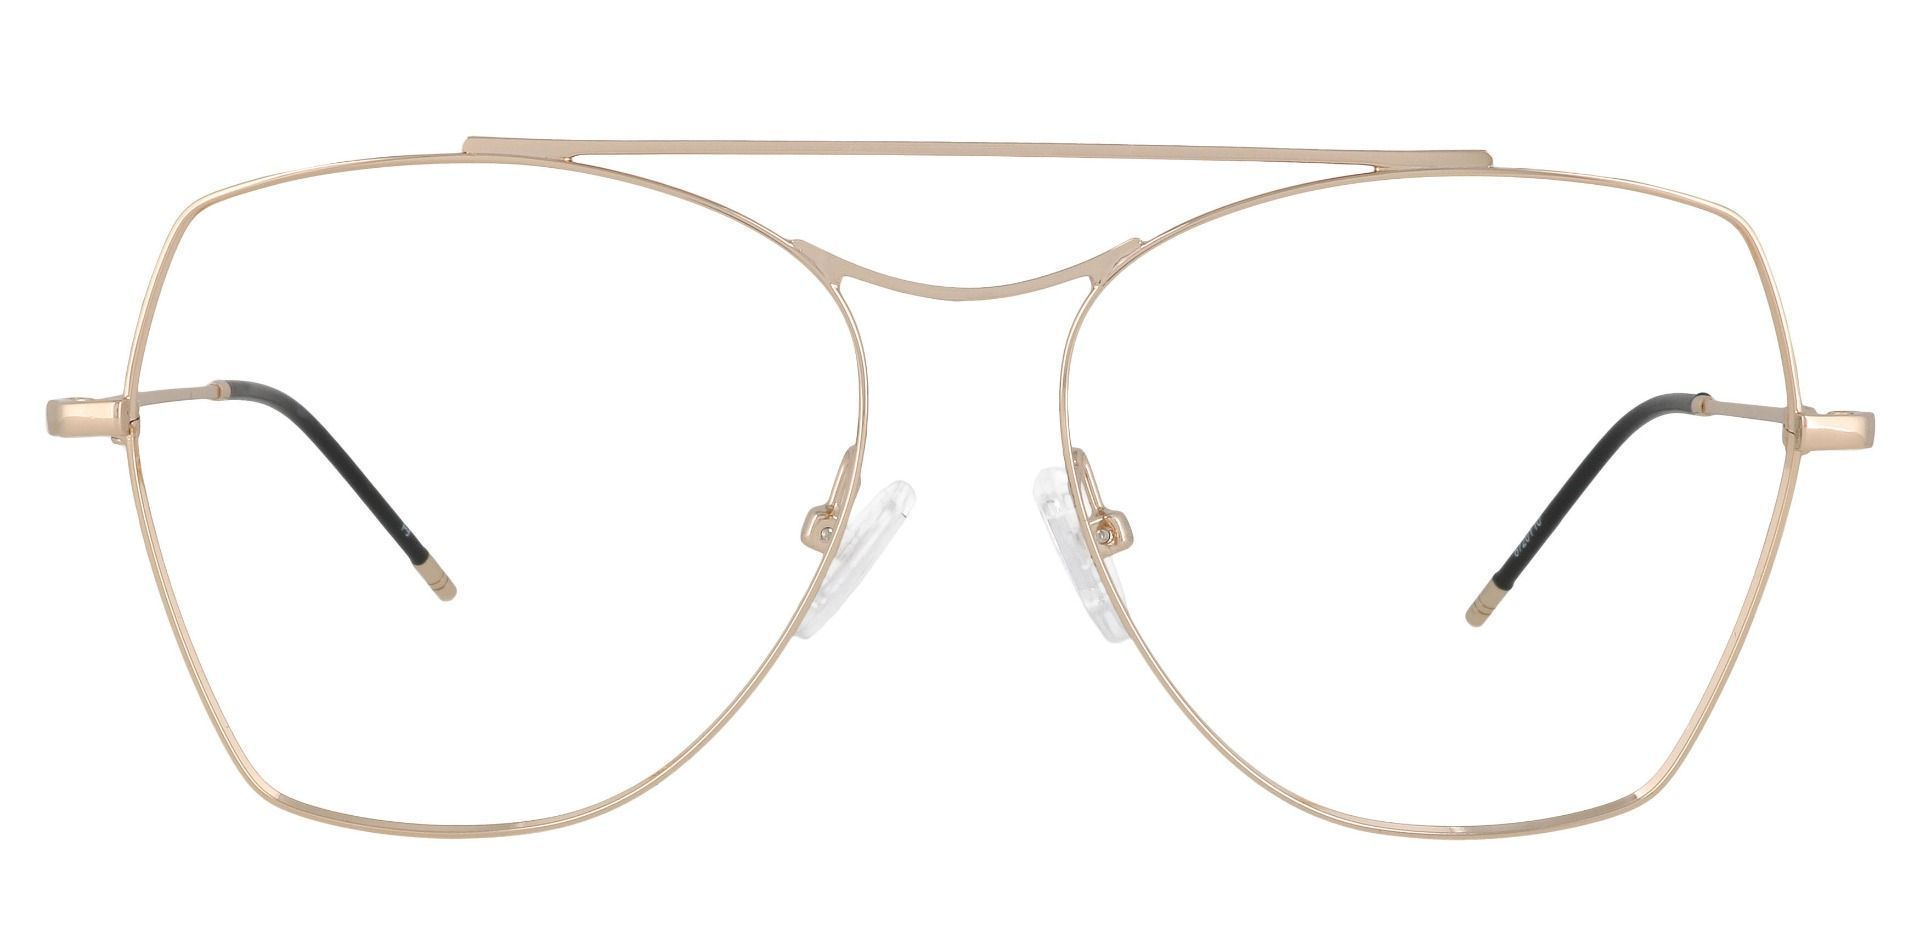 Blaine Aviator Prescription Glasses - Yellow